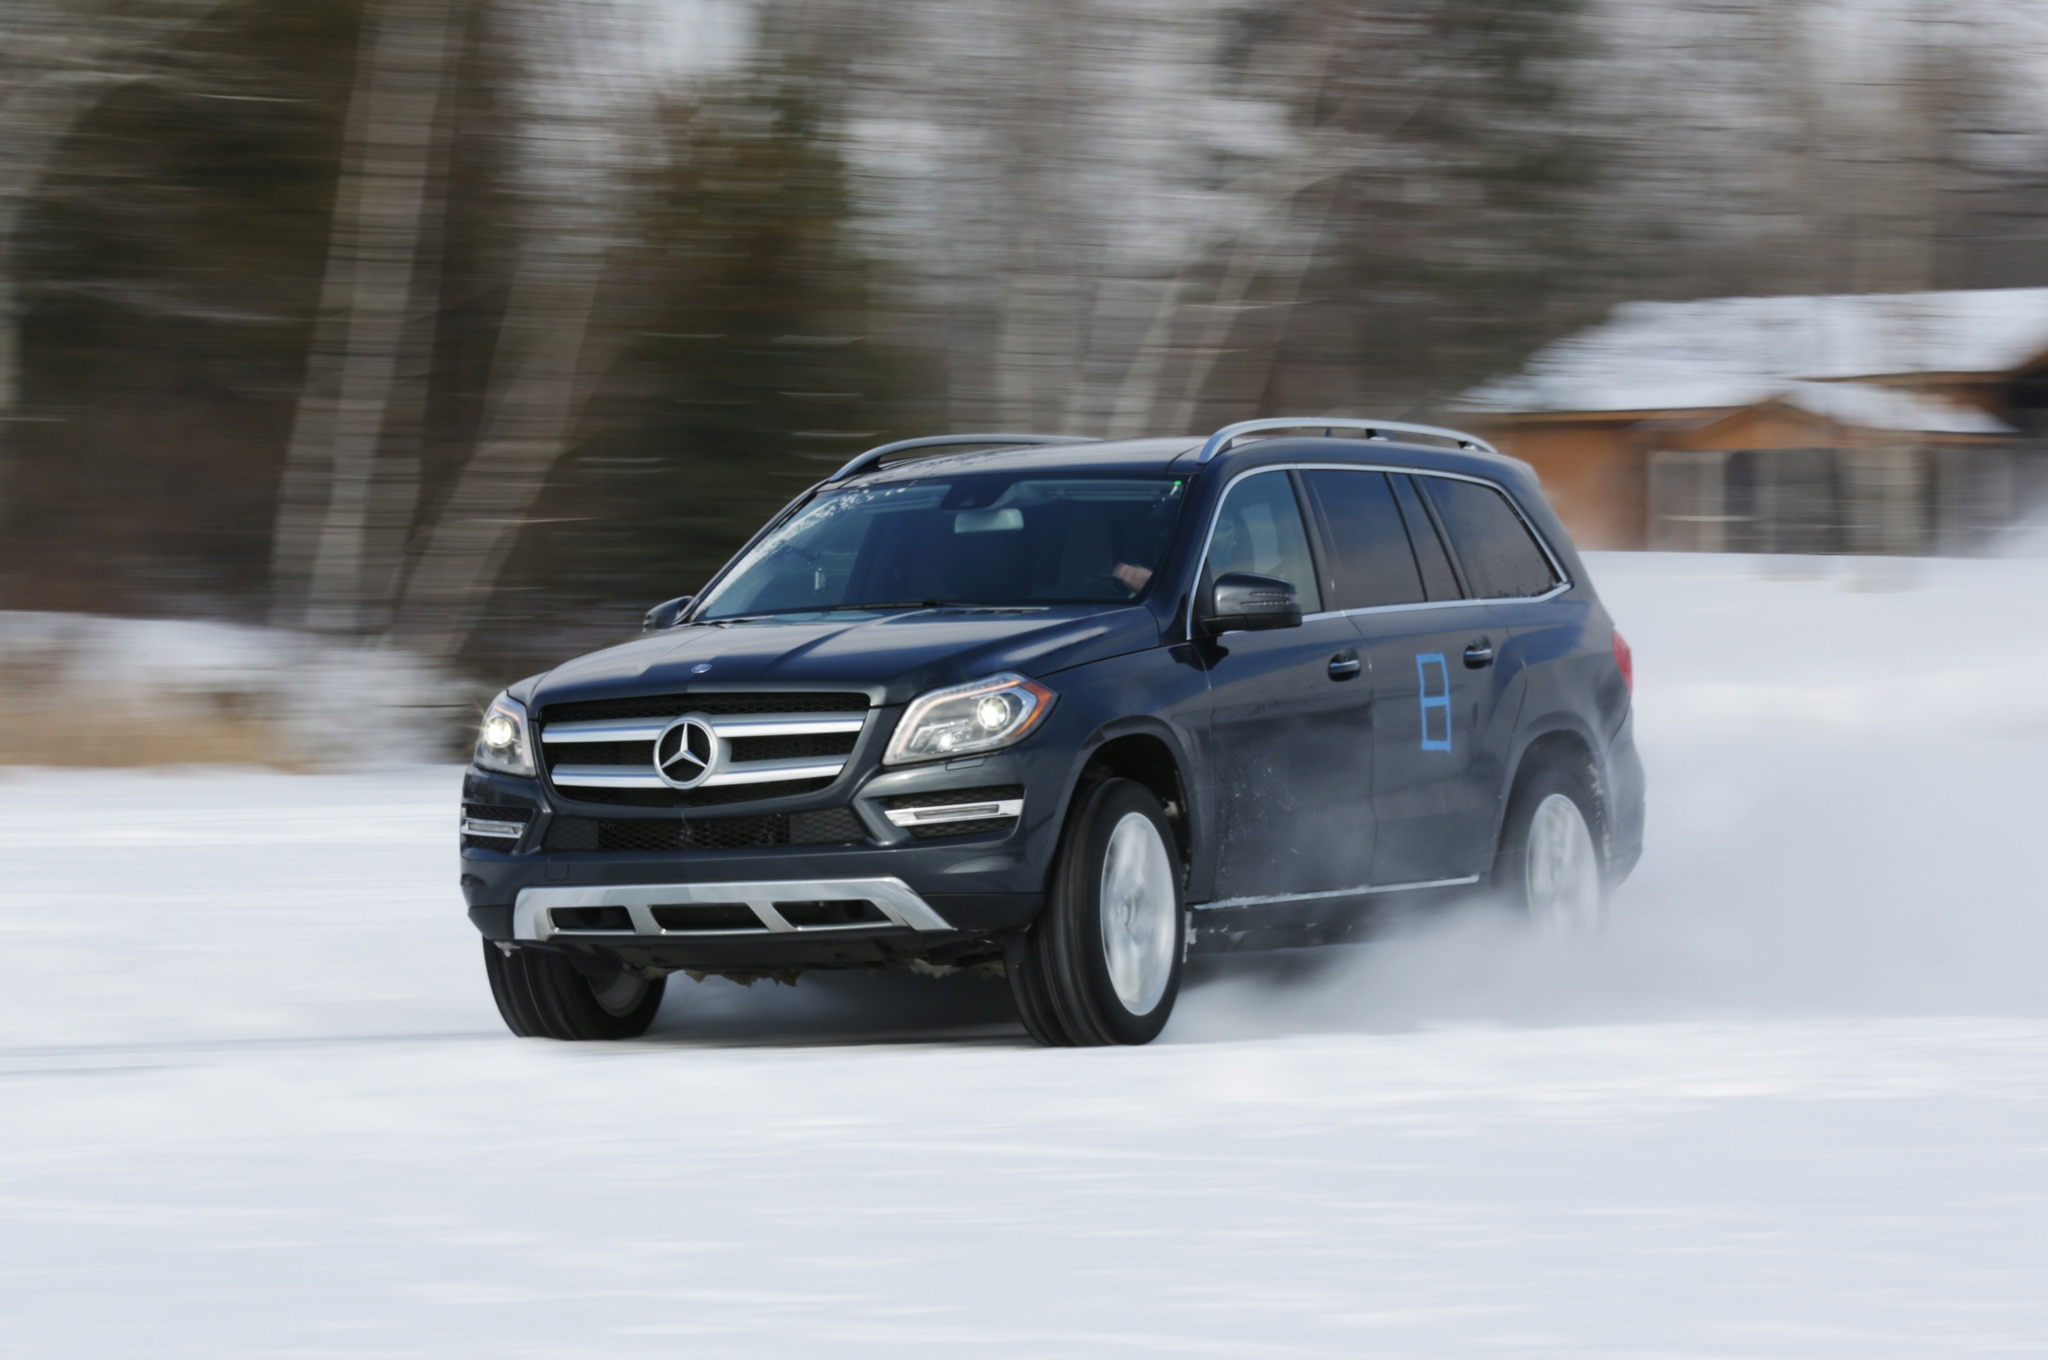 2013 mercedes benz gl450 goes ice racing four seasons. Black Bedroom Furniture Sets. Home Design Ideas